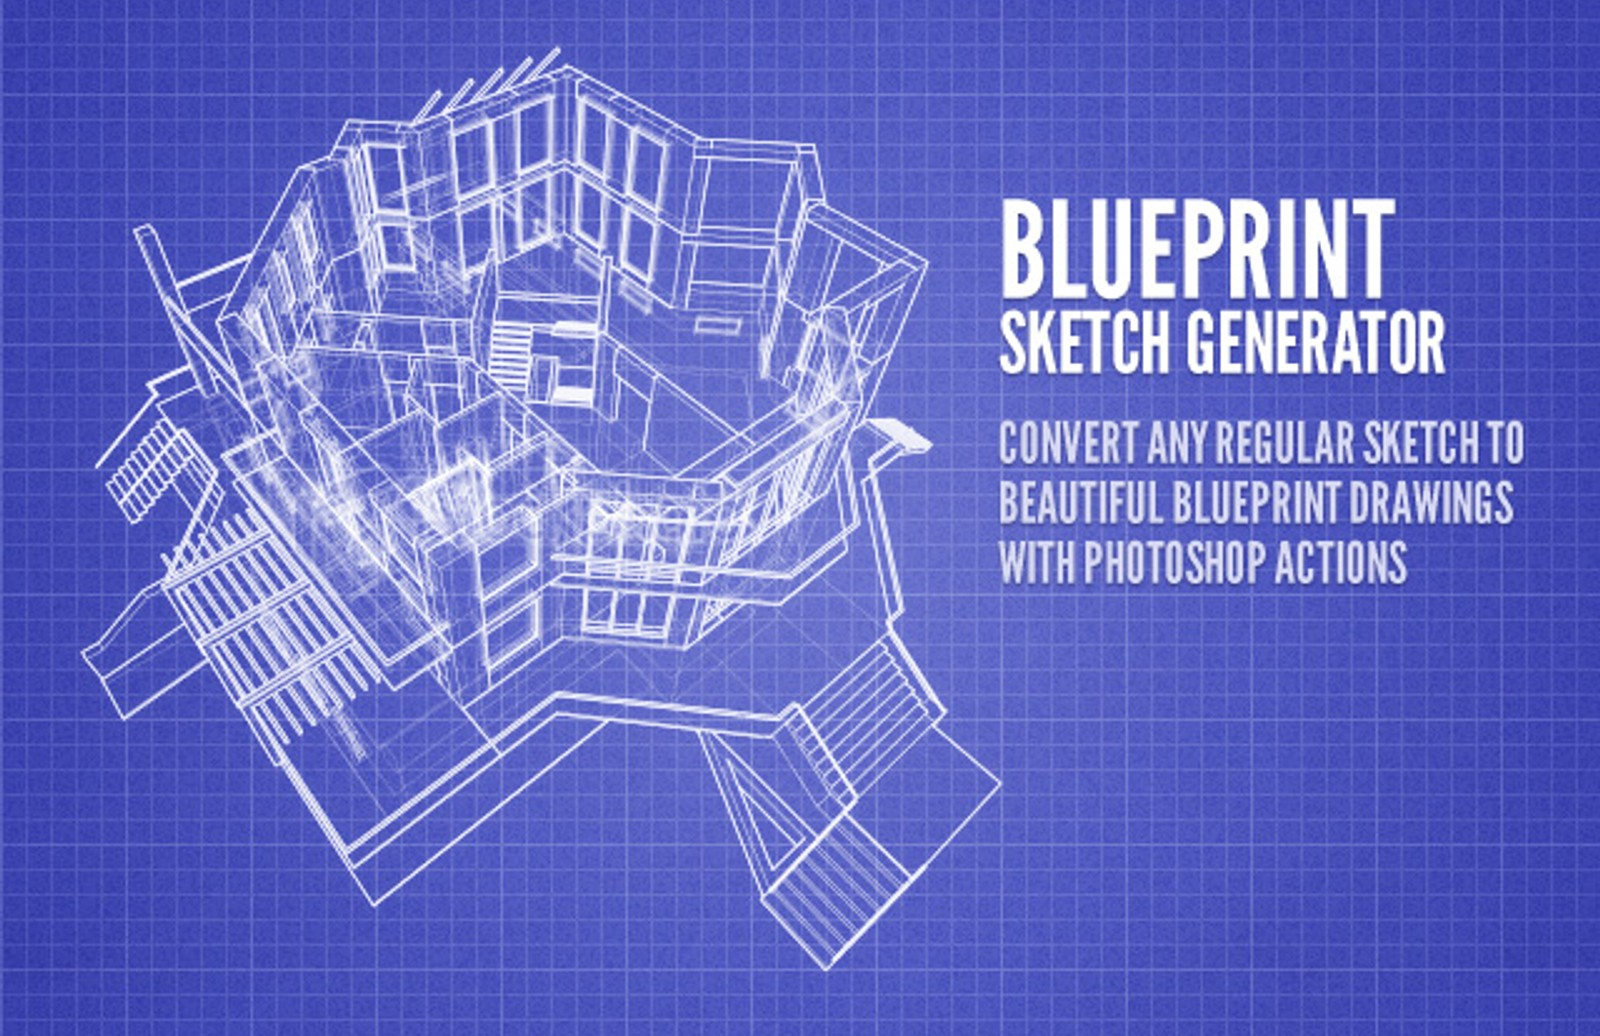 Sketch to blueprint generator medialoot blueprint sketch generator preview1 malvernweather Choice Image